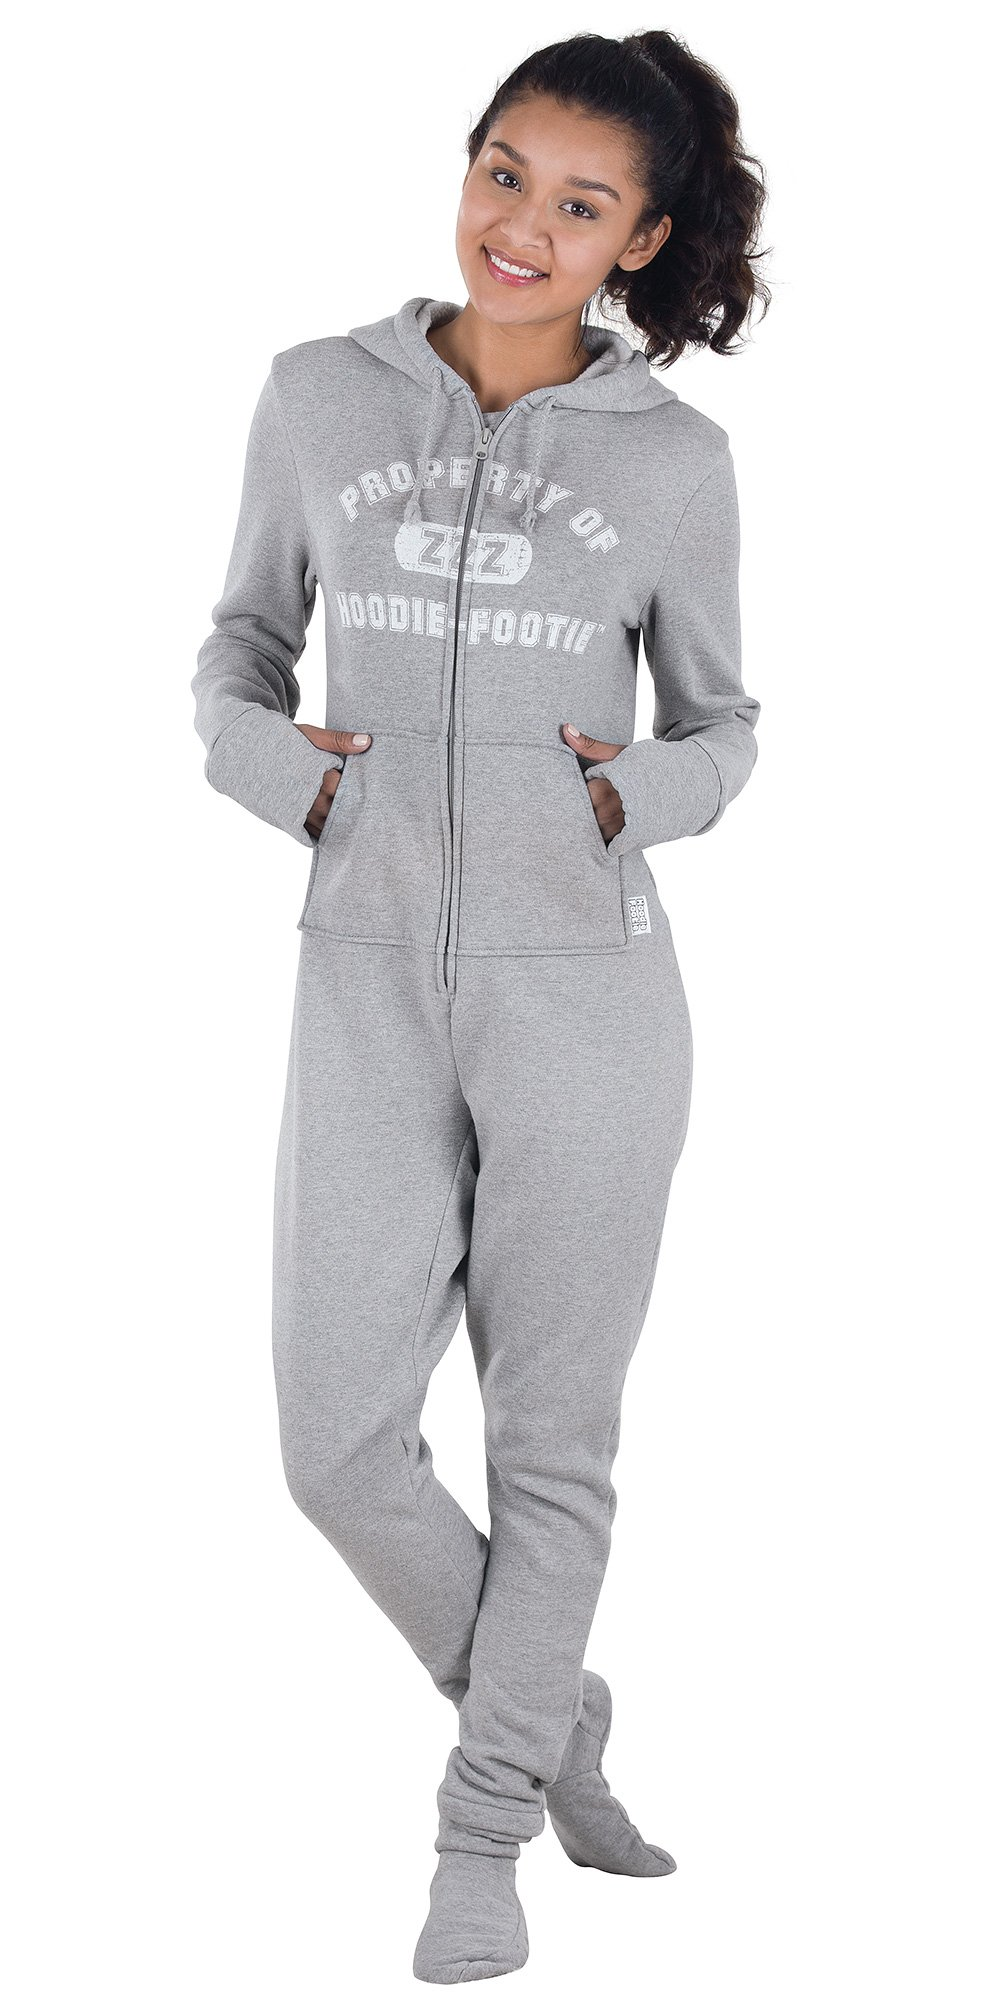 Adult Jumpsuits Footed Pajamas & Onesies | SKARRO - Be Fun - Live ...